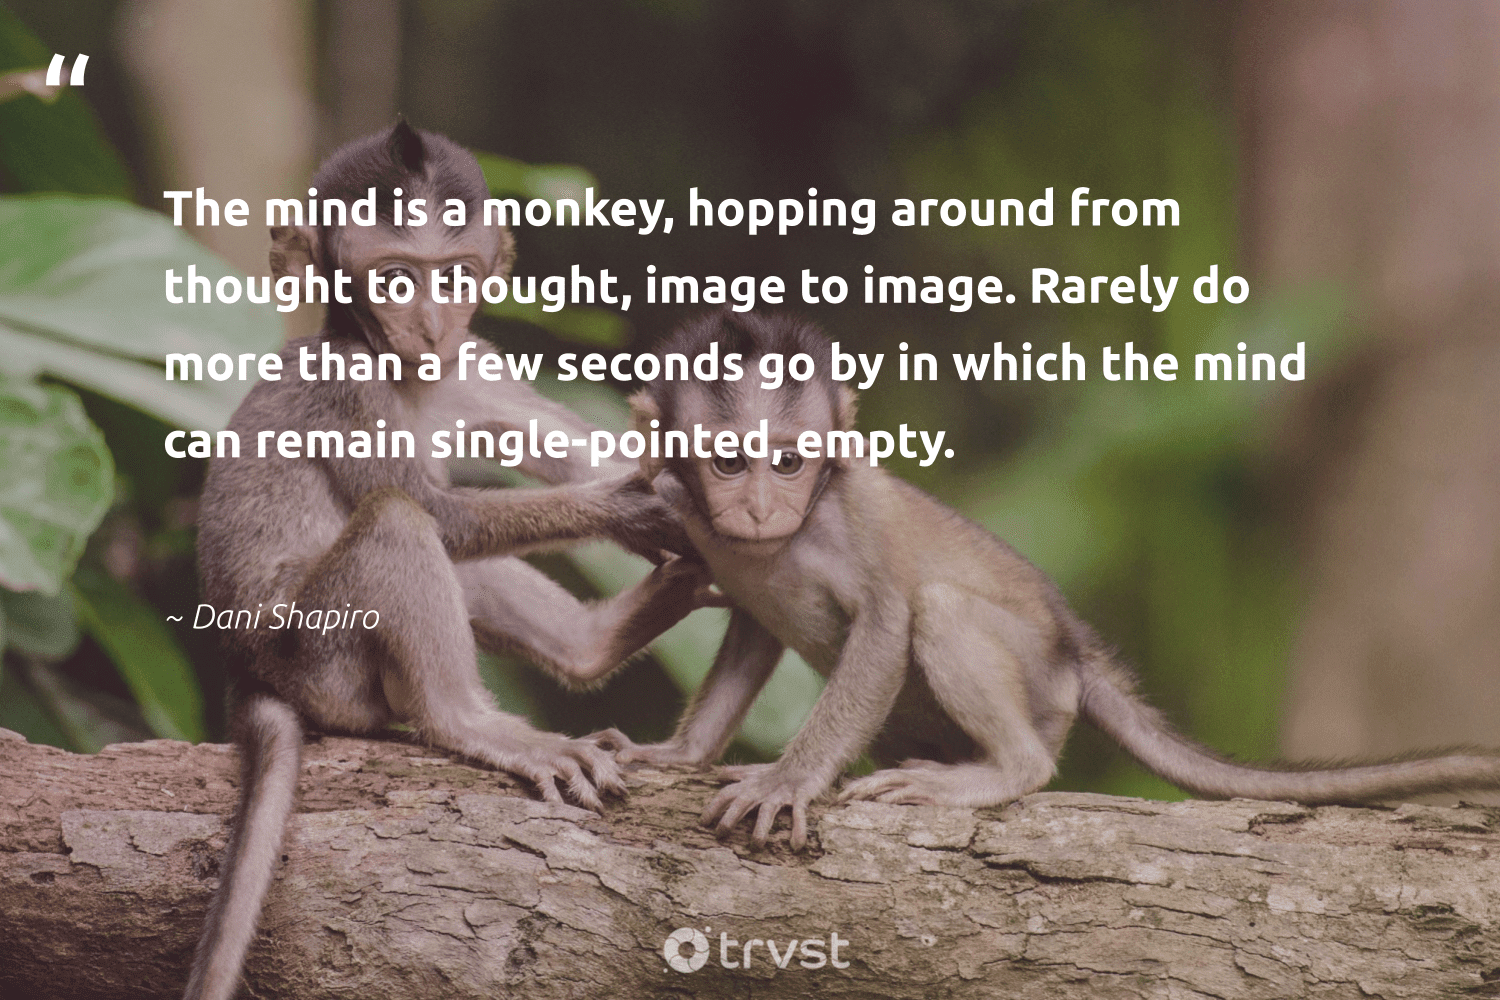 """""""The mind is a monkey, hopping around from thought to thought, image to image. Rarely do more than a few seconds go by in which the mind can remain single-pointed, empty.""""  - Dani Shapiro #trvst #quotes #monkey #domore #perfectnature #bethechange #wild #changetheworld #majesticwildlife #collectiveaction #wildlifeprotection #beinspired"""